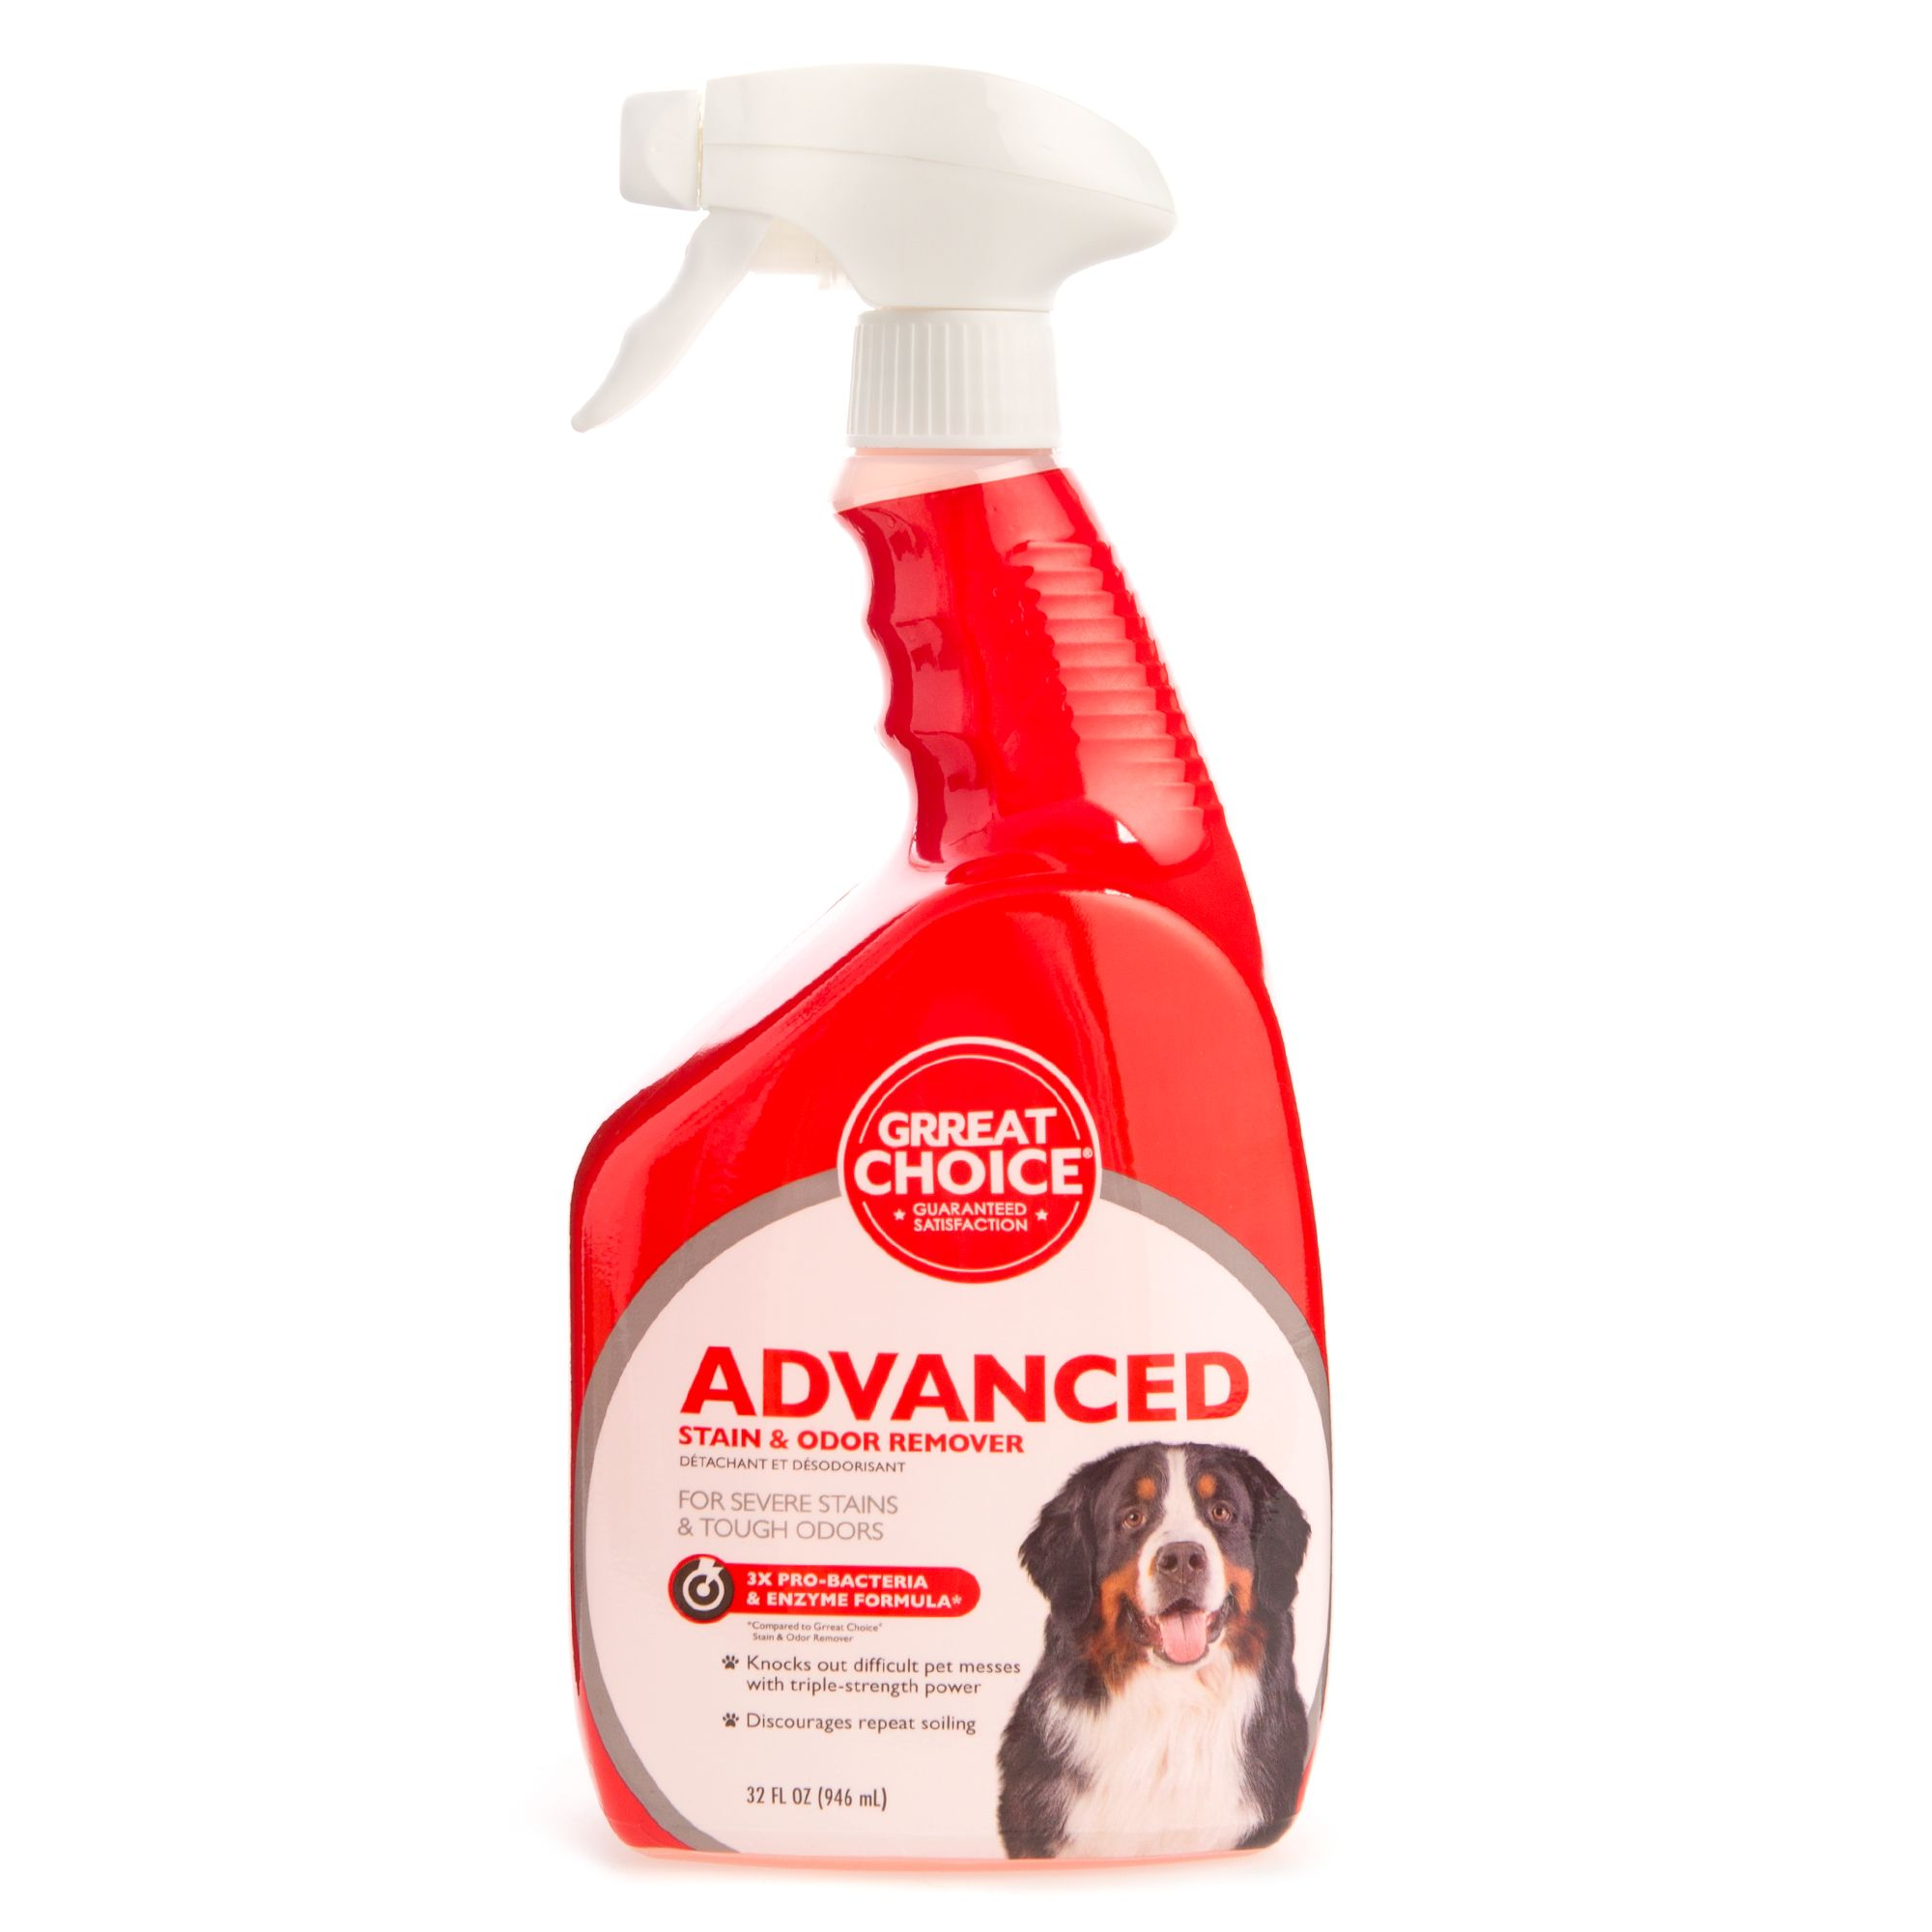 Grreat Choice Advanced Stain And Odor Remover Size 32 Fl Oz